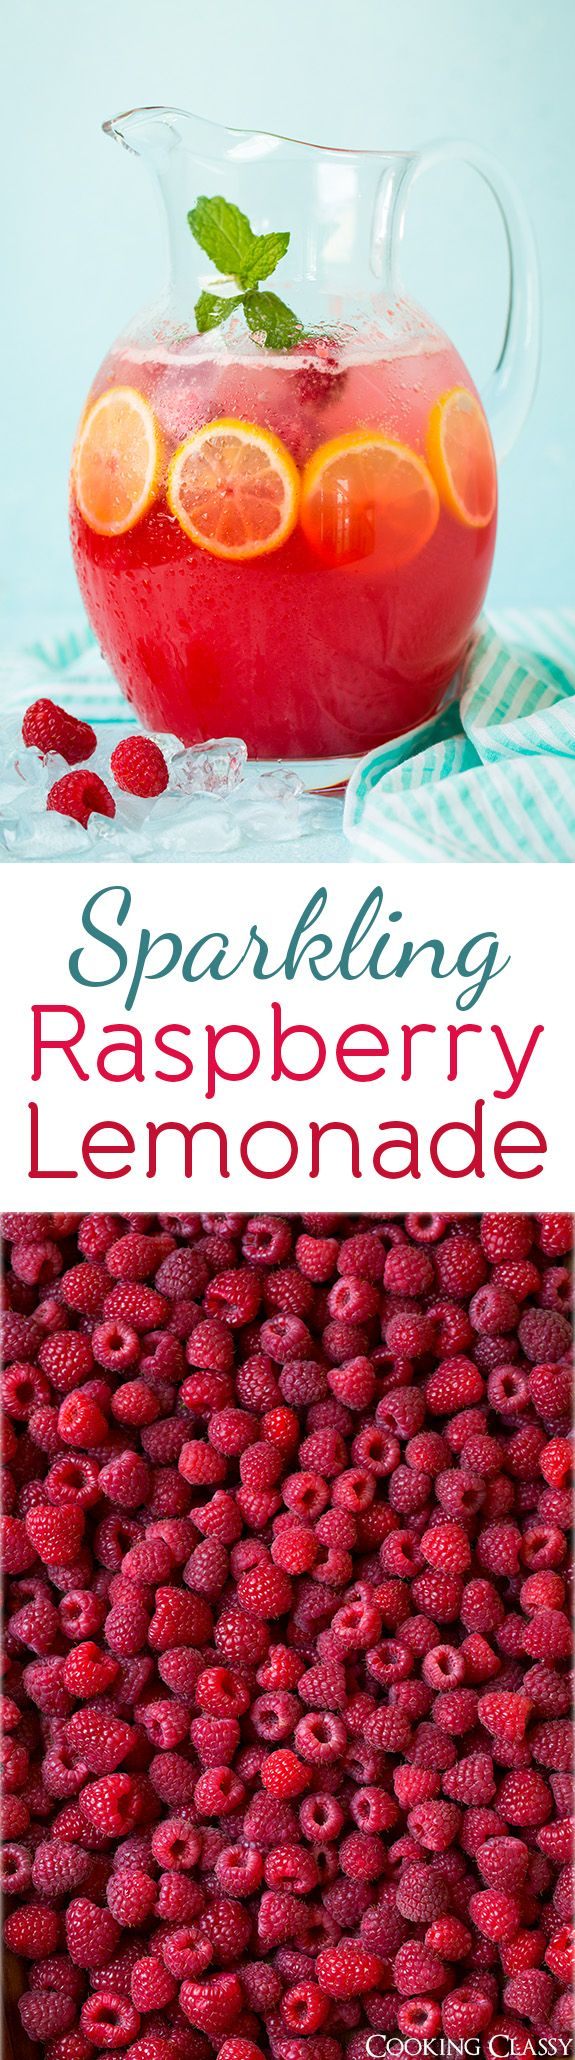 Sparkling Raspberry Lemonade - this is so vibrant and refreshing, I could drink this all summer long!